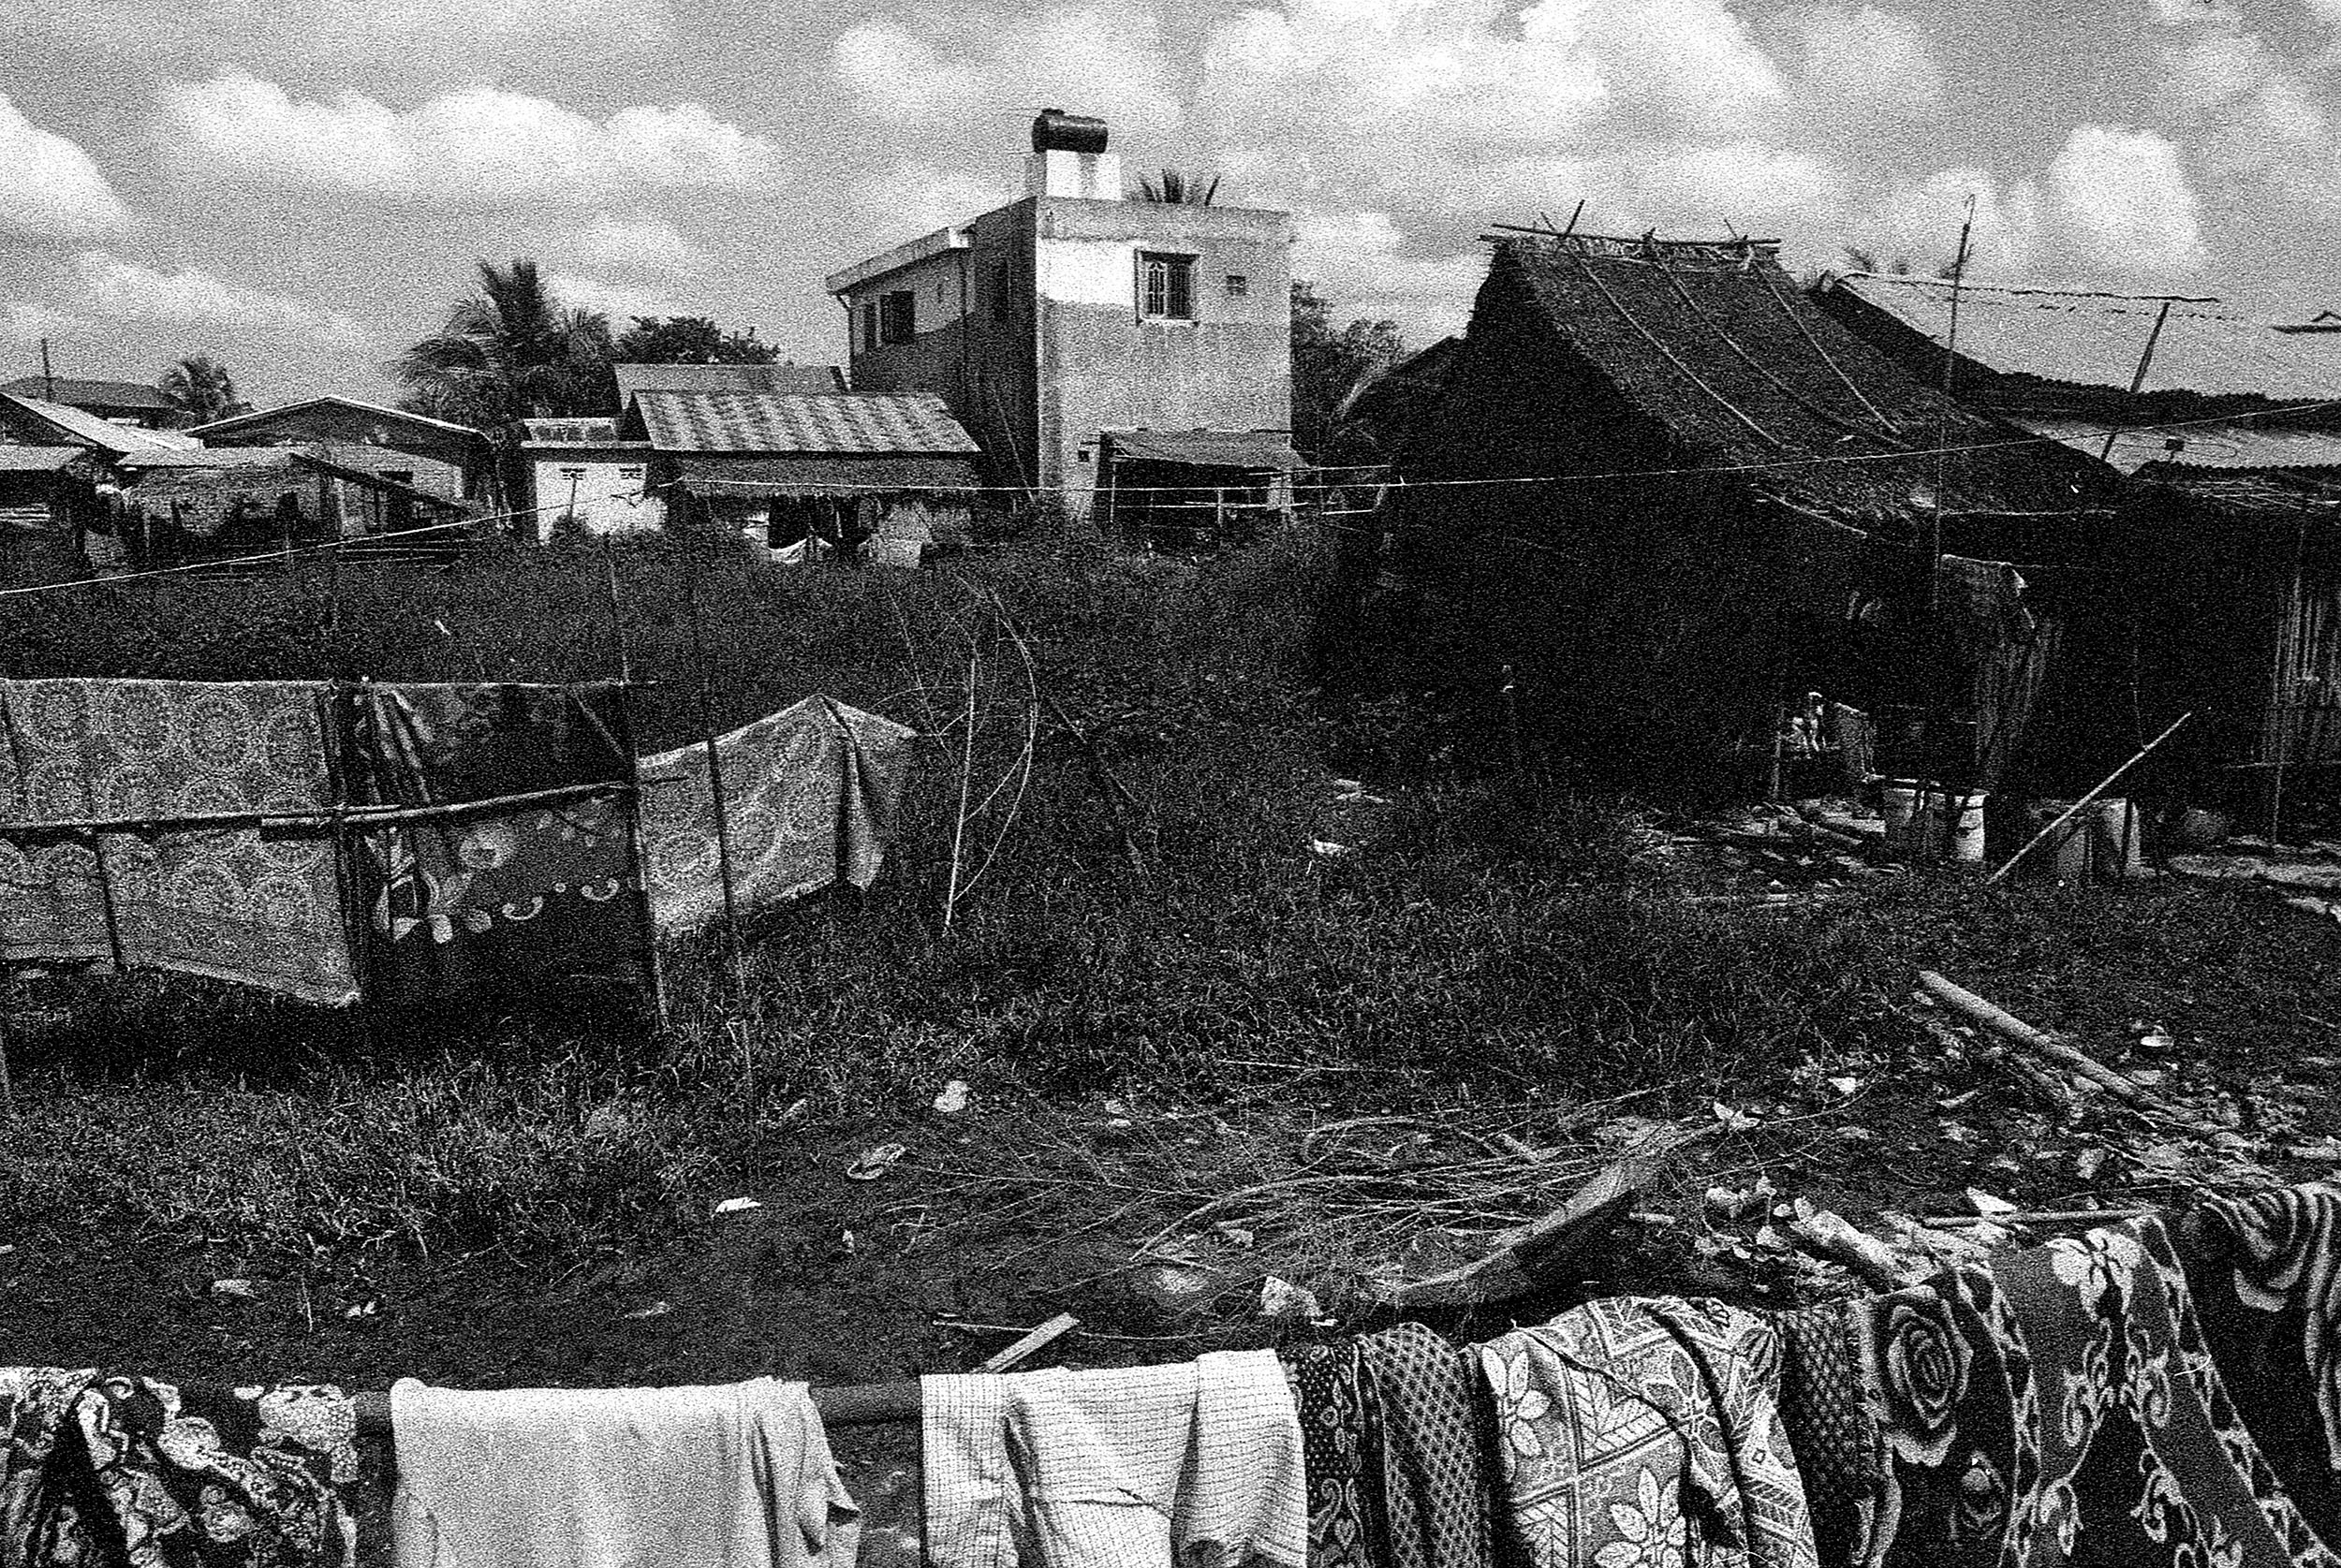 The illegal settlement of Dine Su is susceptible to exploitation by authorities.